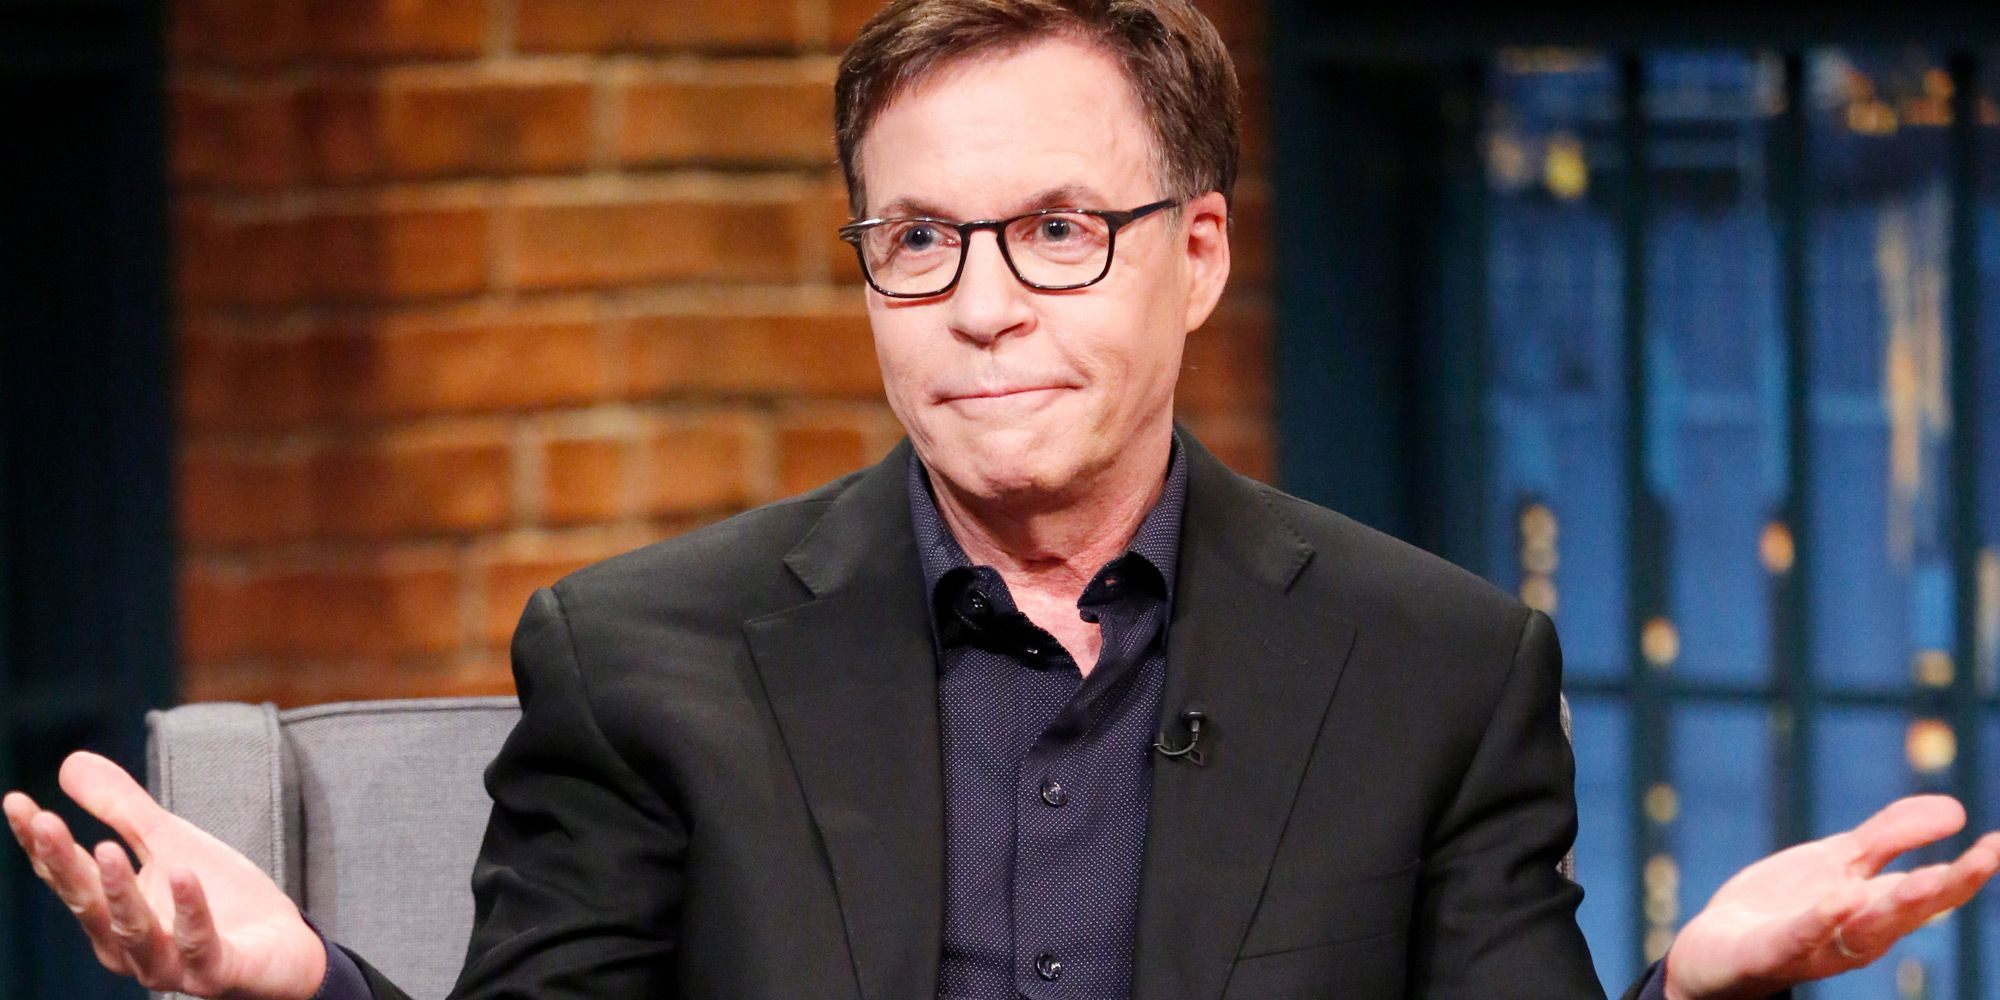 Bob Costas Wore a Fedora and Twitter Ruthlessly Burned Him For It